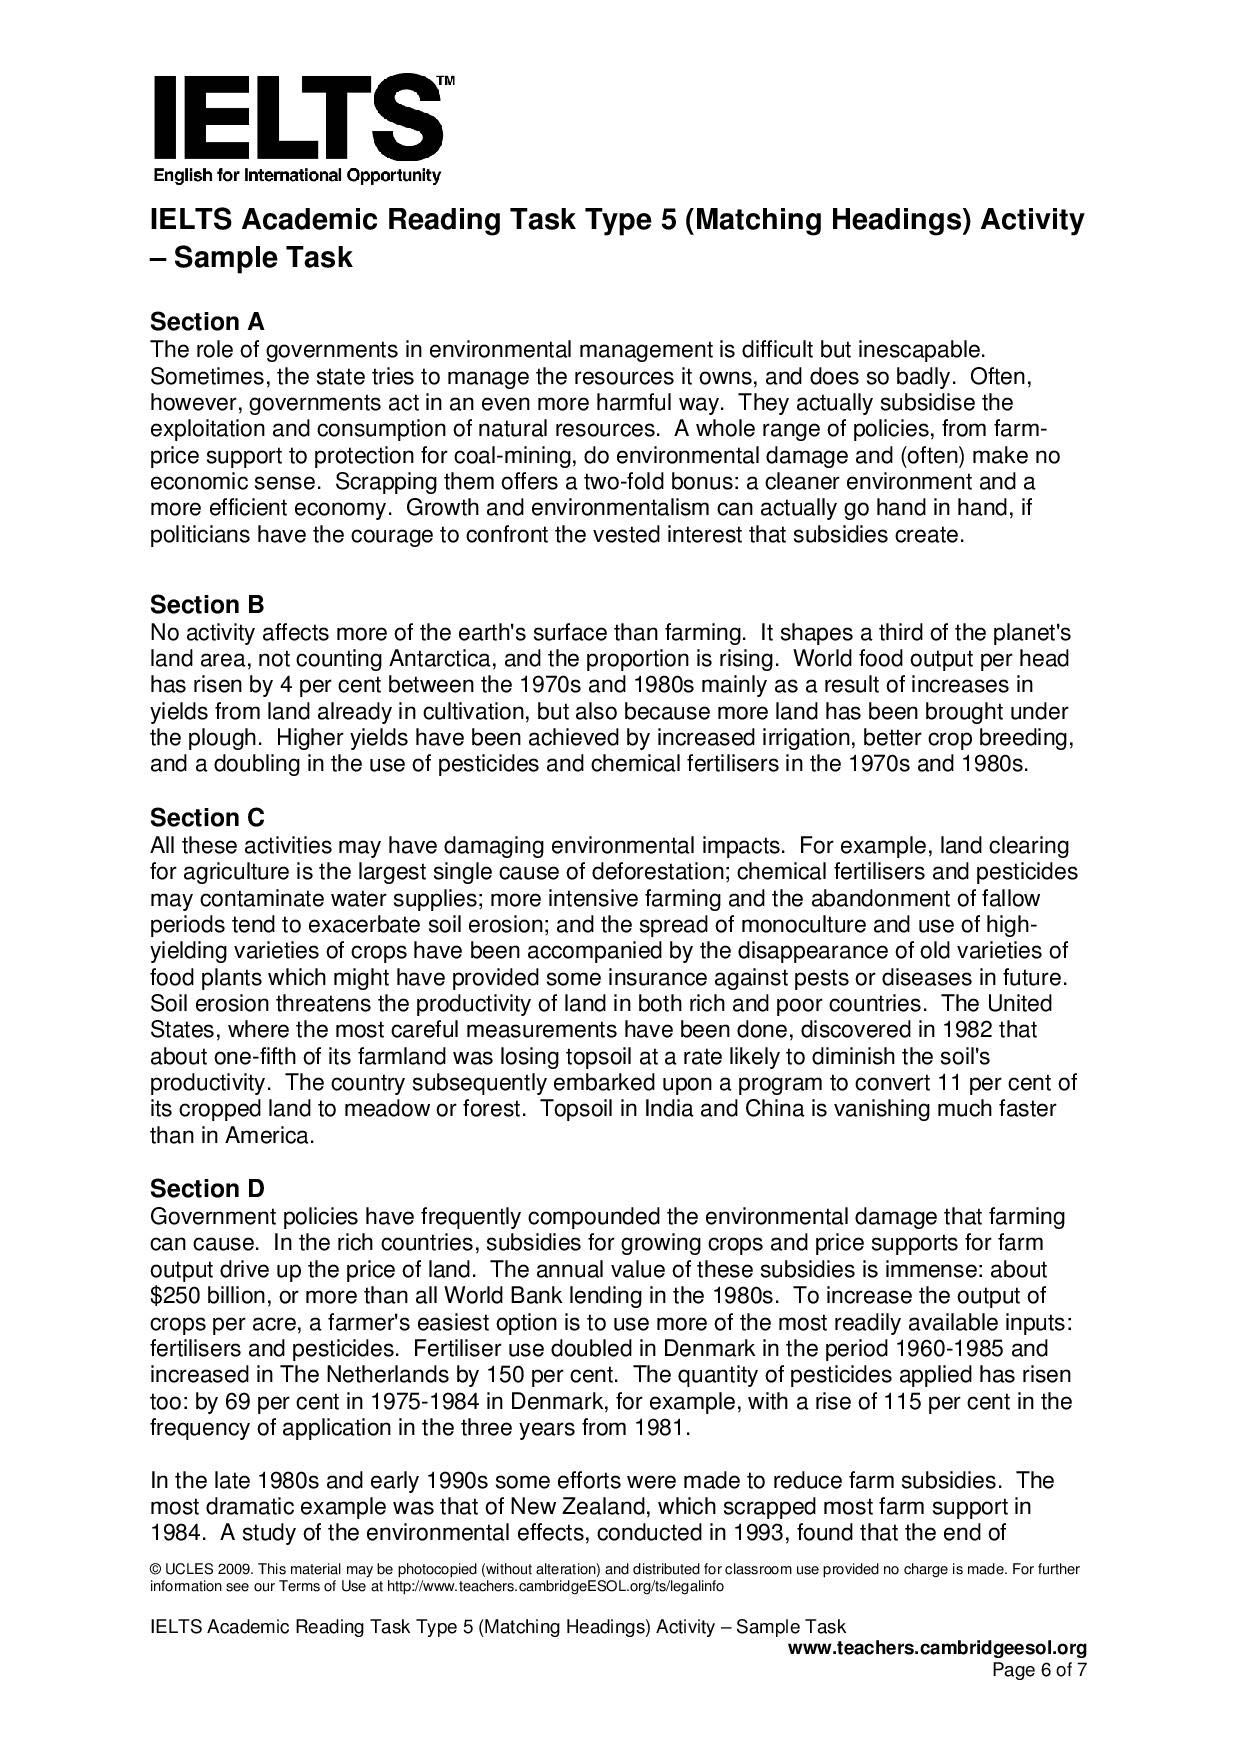 essay type in ielts This is a band 9 guide to writing agree/disagree essays in ielts writing agree or disagree essay questions are very common for ielts writing task 2this type of questions asks you to say whether you agree or disagree with a given statement and justify your opinion.